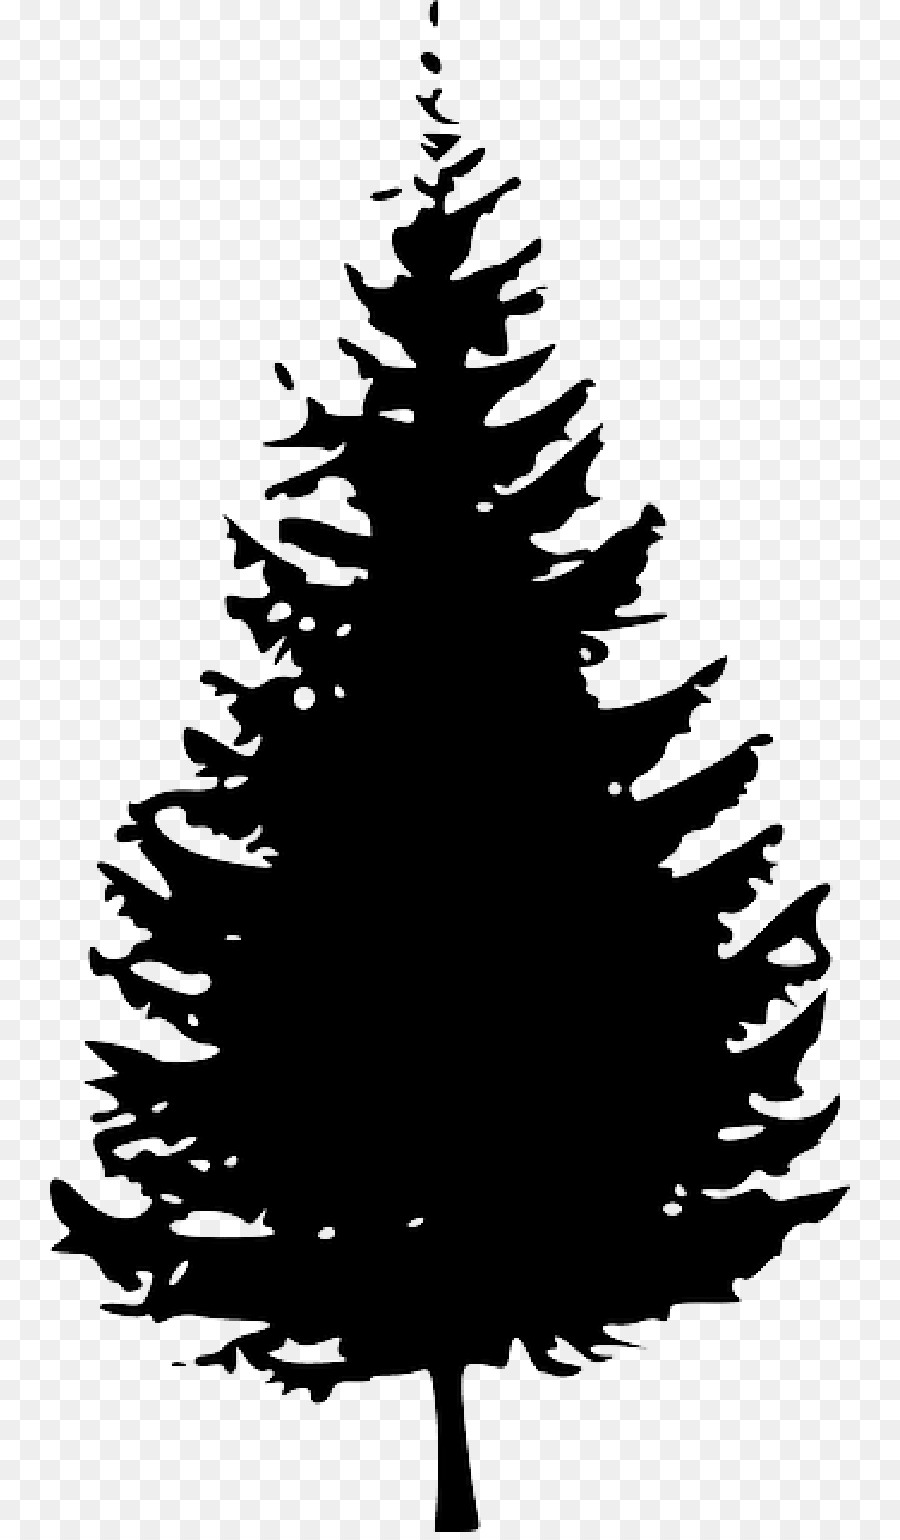 Pine Tree Fir Clip art.